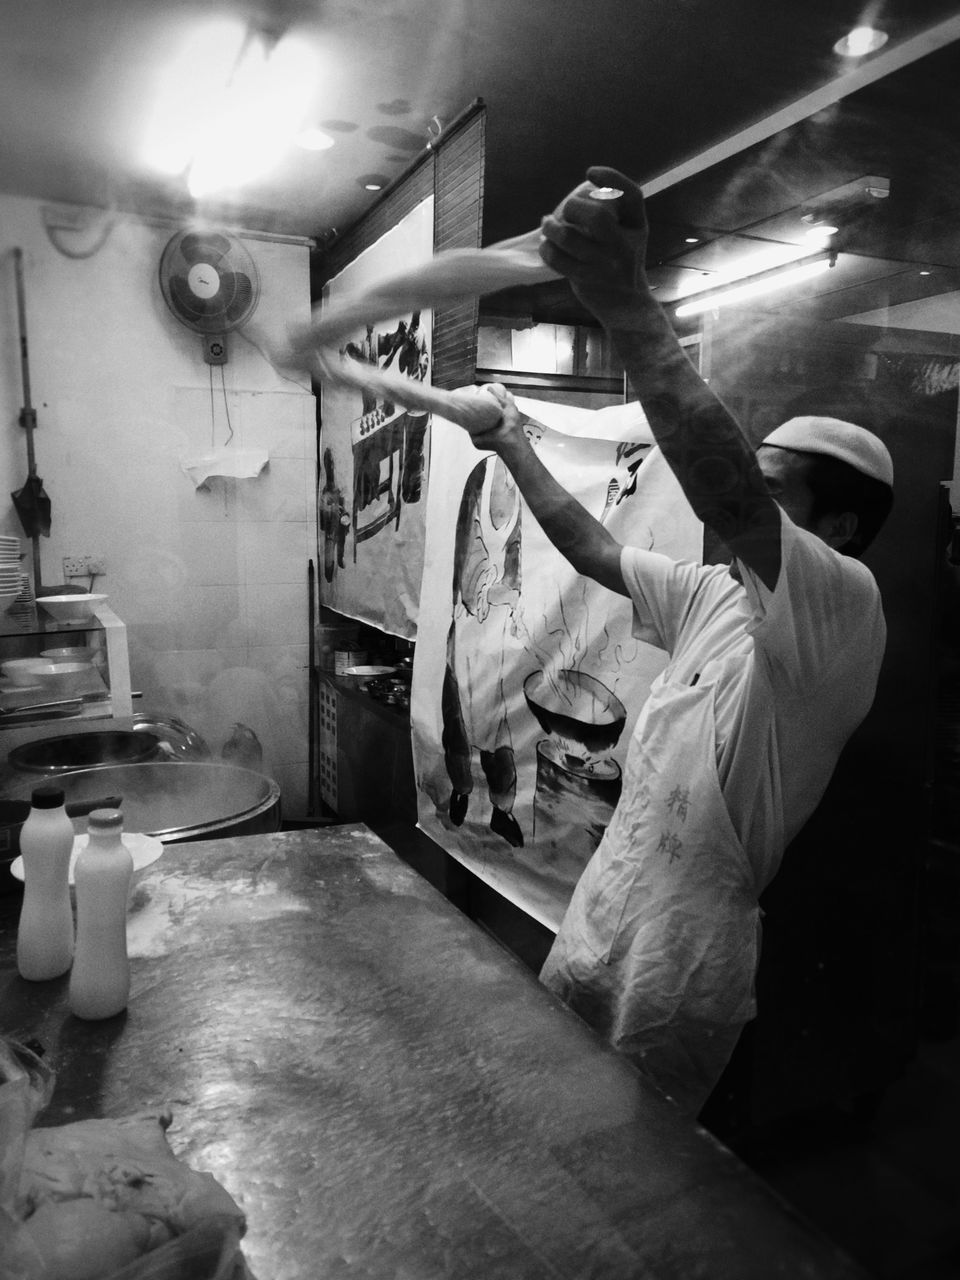 real people, occupation, working, skill, men, commercial kitchen, indoors, kitchen, protective workwear, workshop, one person, manual worker, chef, food and drink establishment, food, butcher, day, people